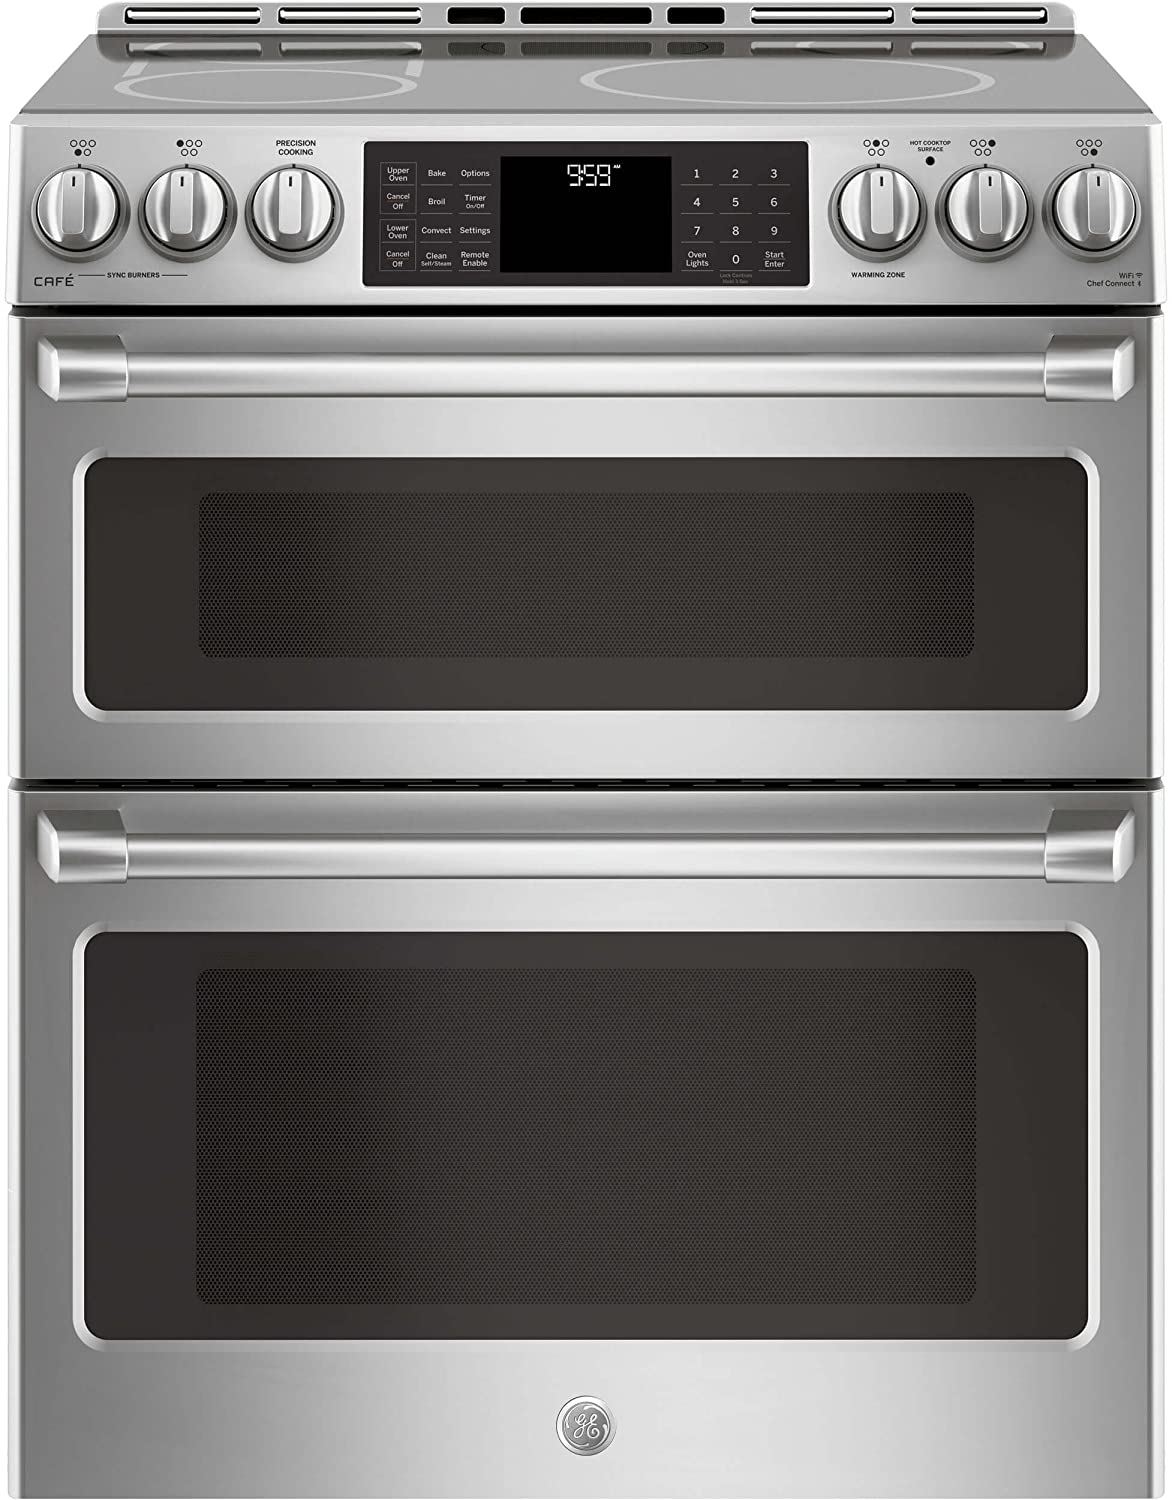 GE Cafe CHS995SELSS 30 Inch Slide-in Electric Range